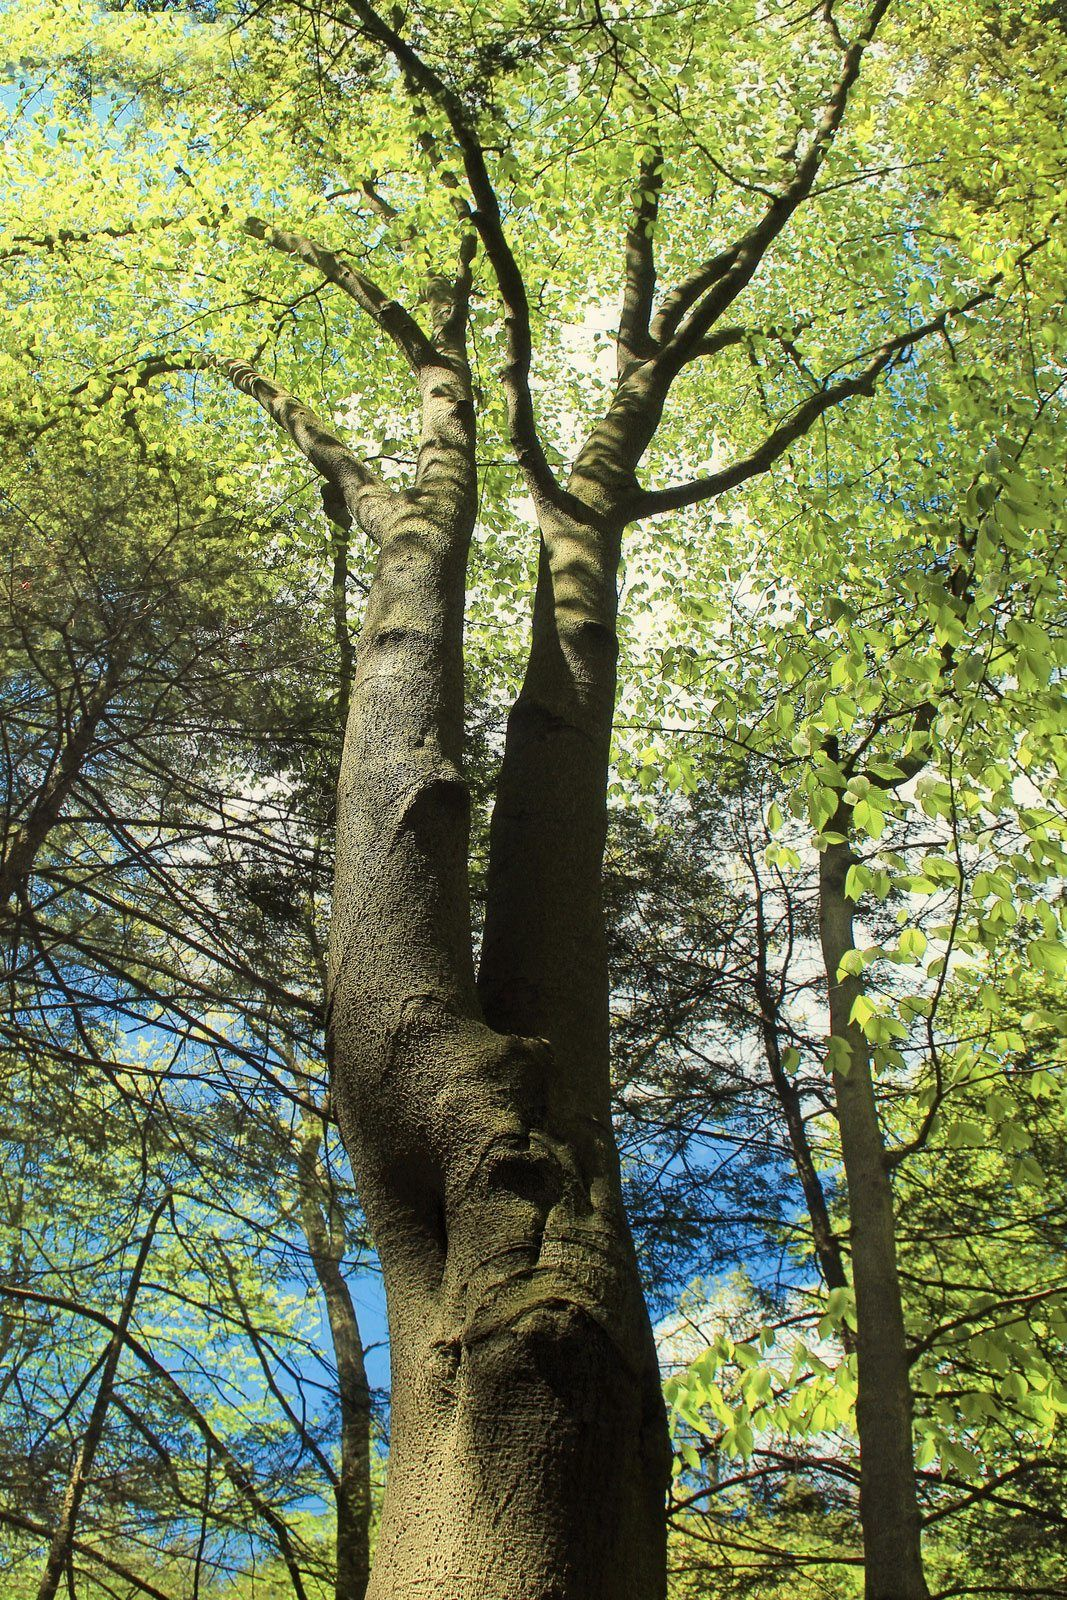 If You Have A Large Property That Needs Some Shade Consider Growing Beech Trees Learn More About Growing Beech Beech Tree Trees To Plant Tree Identification